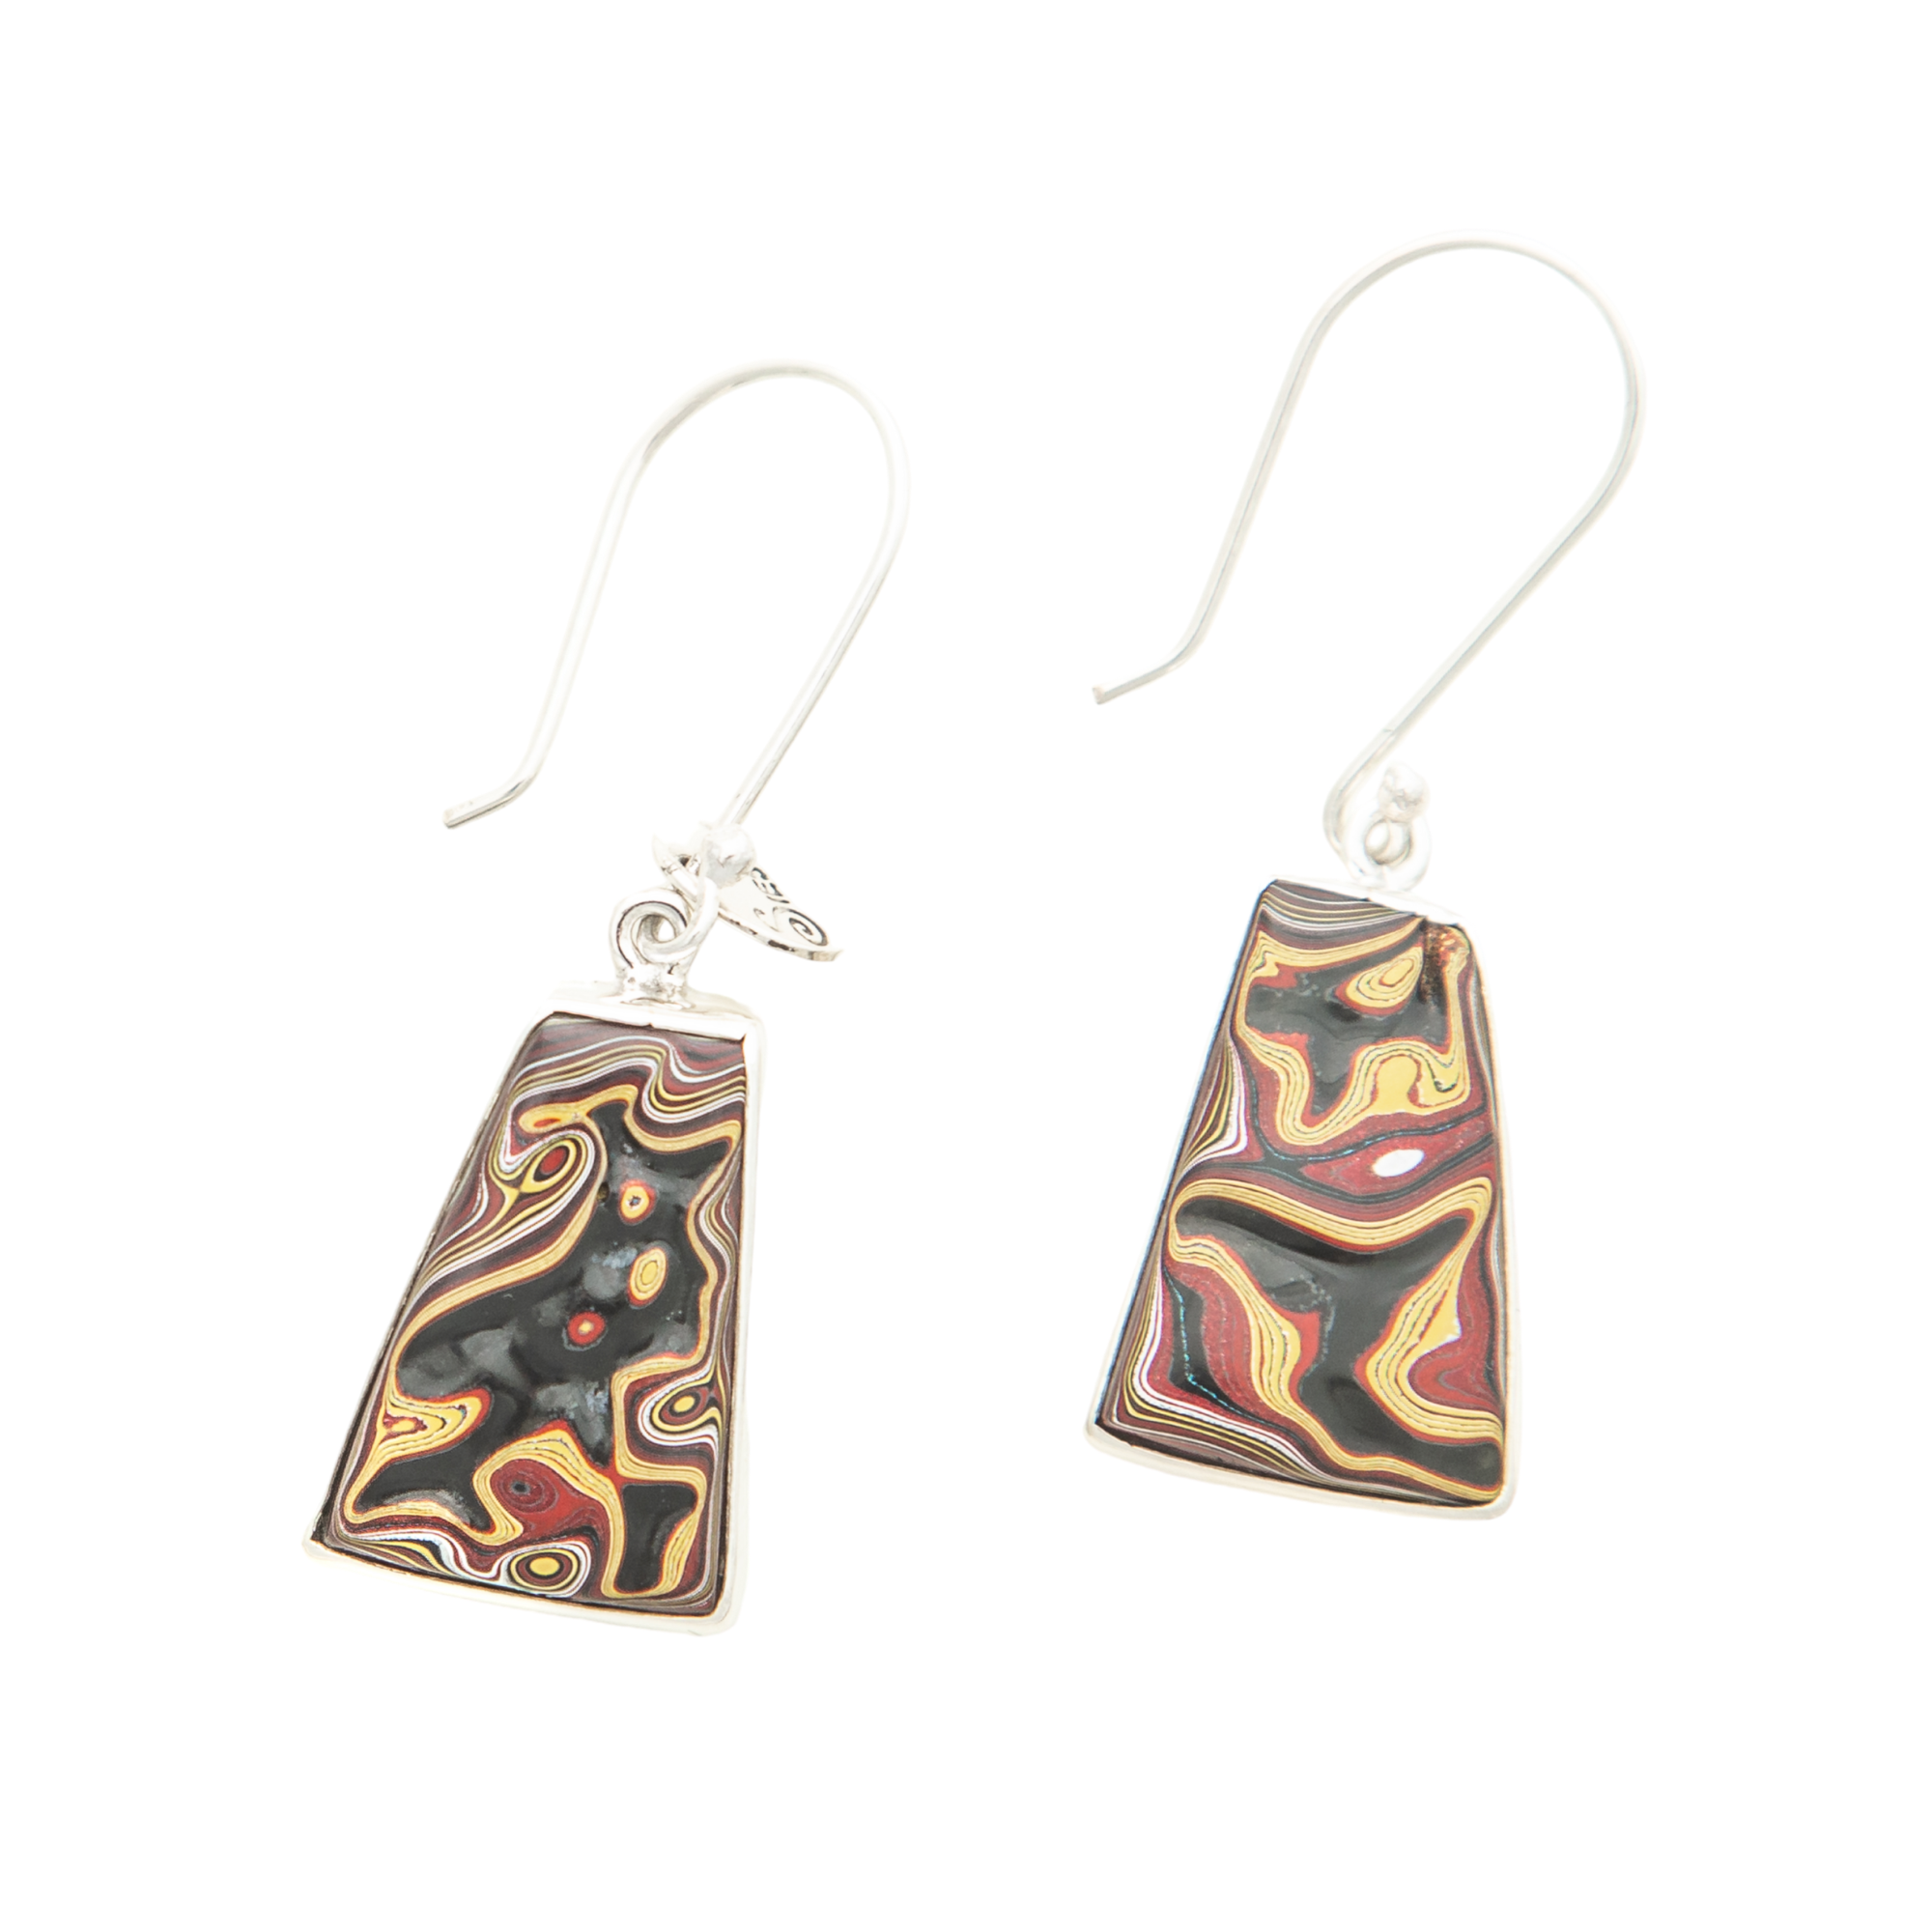 Fordite Corvette Paint Hook Earrings in Sterling Silver